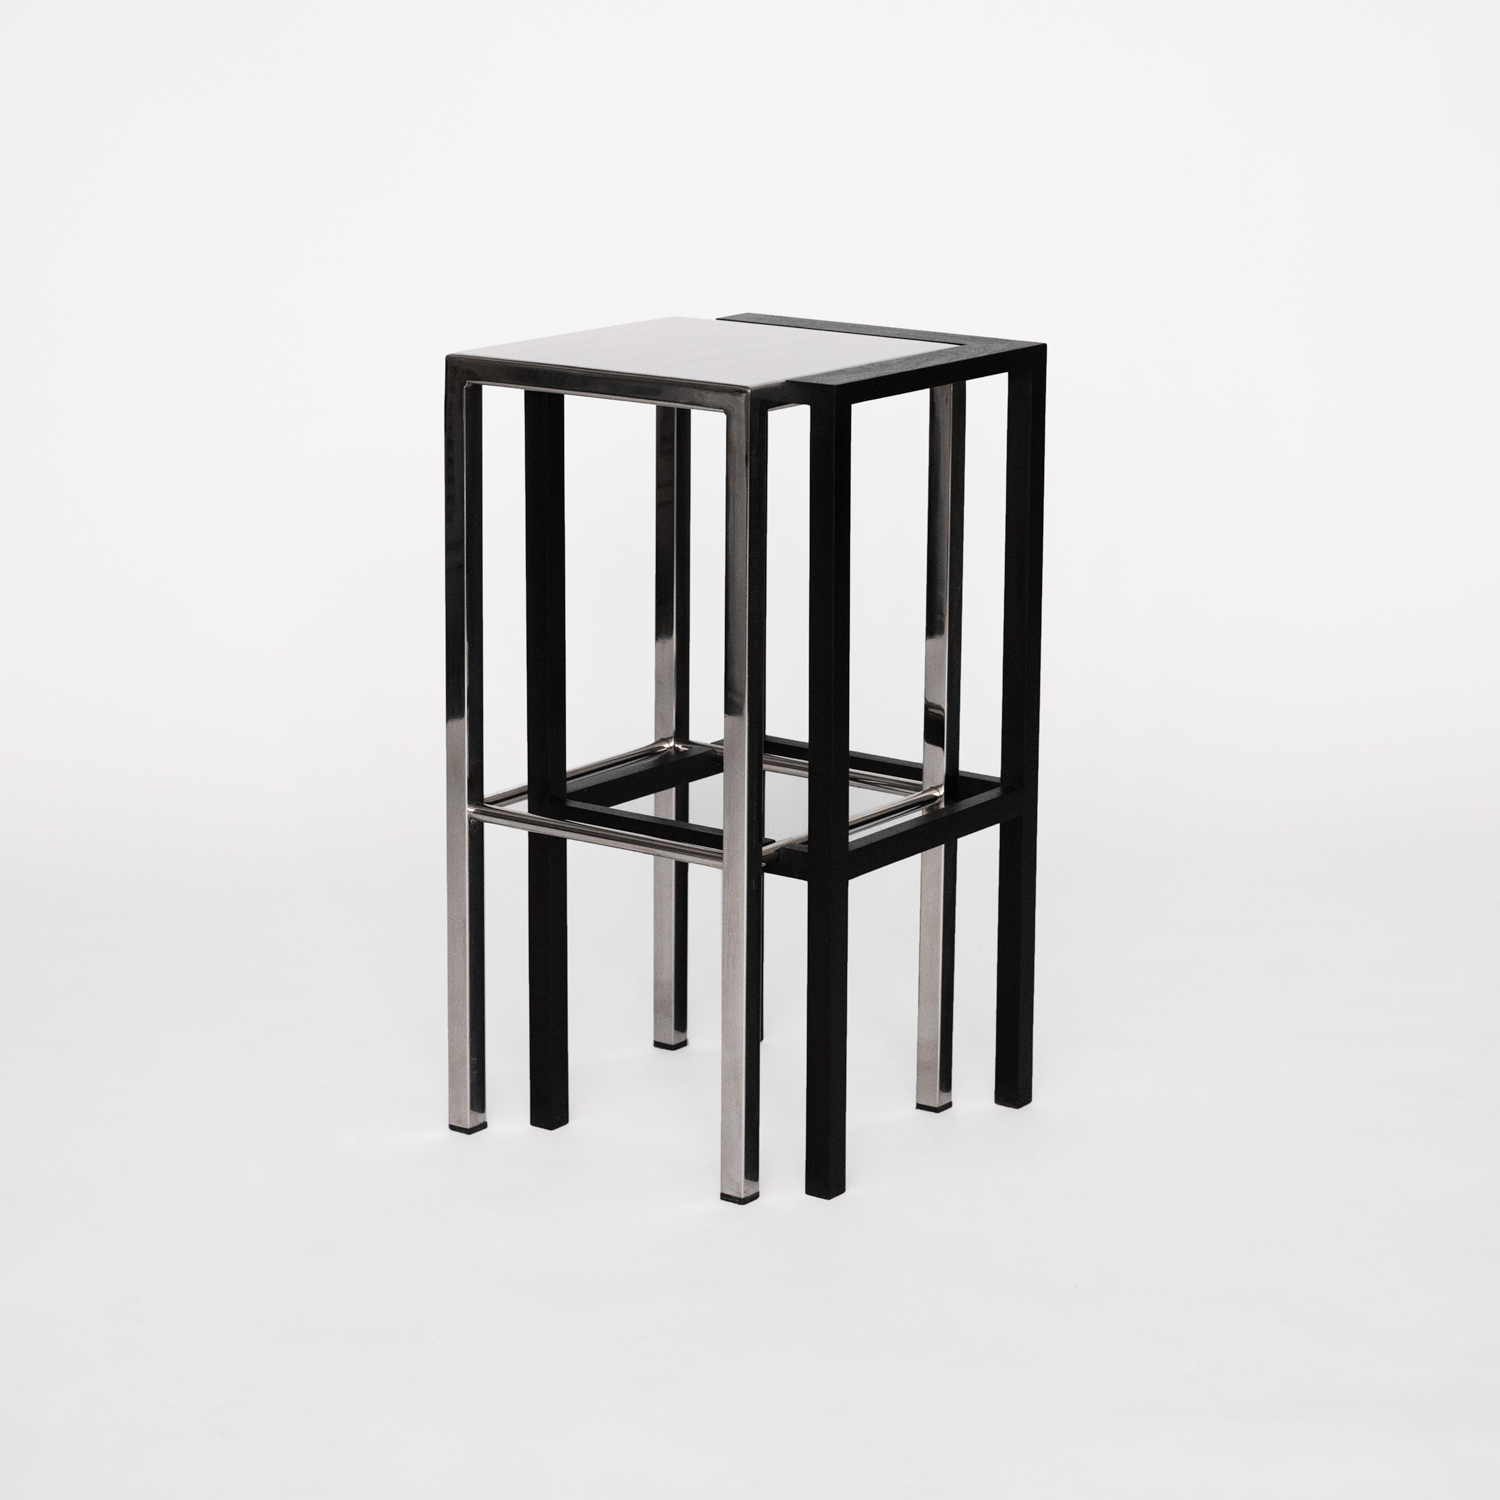 Influenced by drunken nights, the DV Stool expresses the feeling and effect of double vision. By combining reflective and opaque materials, two perceived images overlap and are perceived as one holistic object. Welded in Philadelphia PA and built in Brooklyn, NY. Edition of 20, 2 APs.